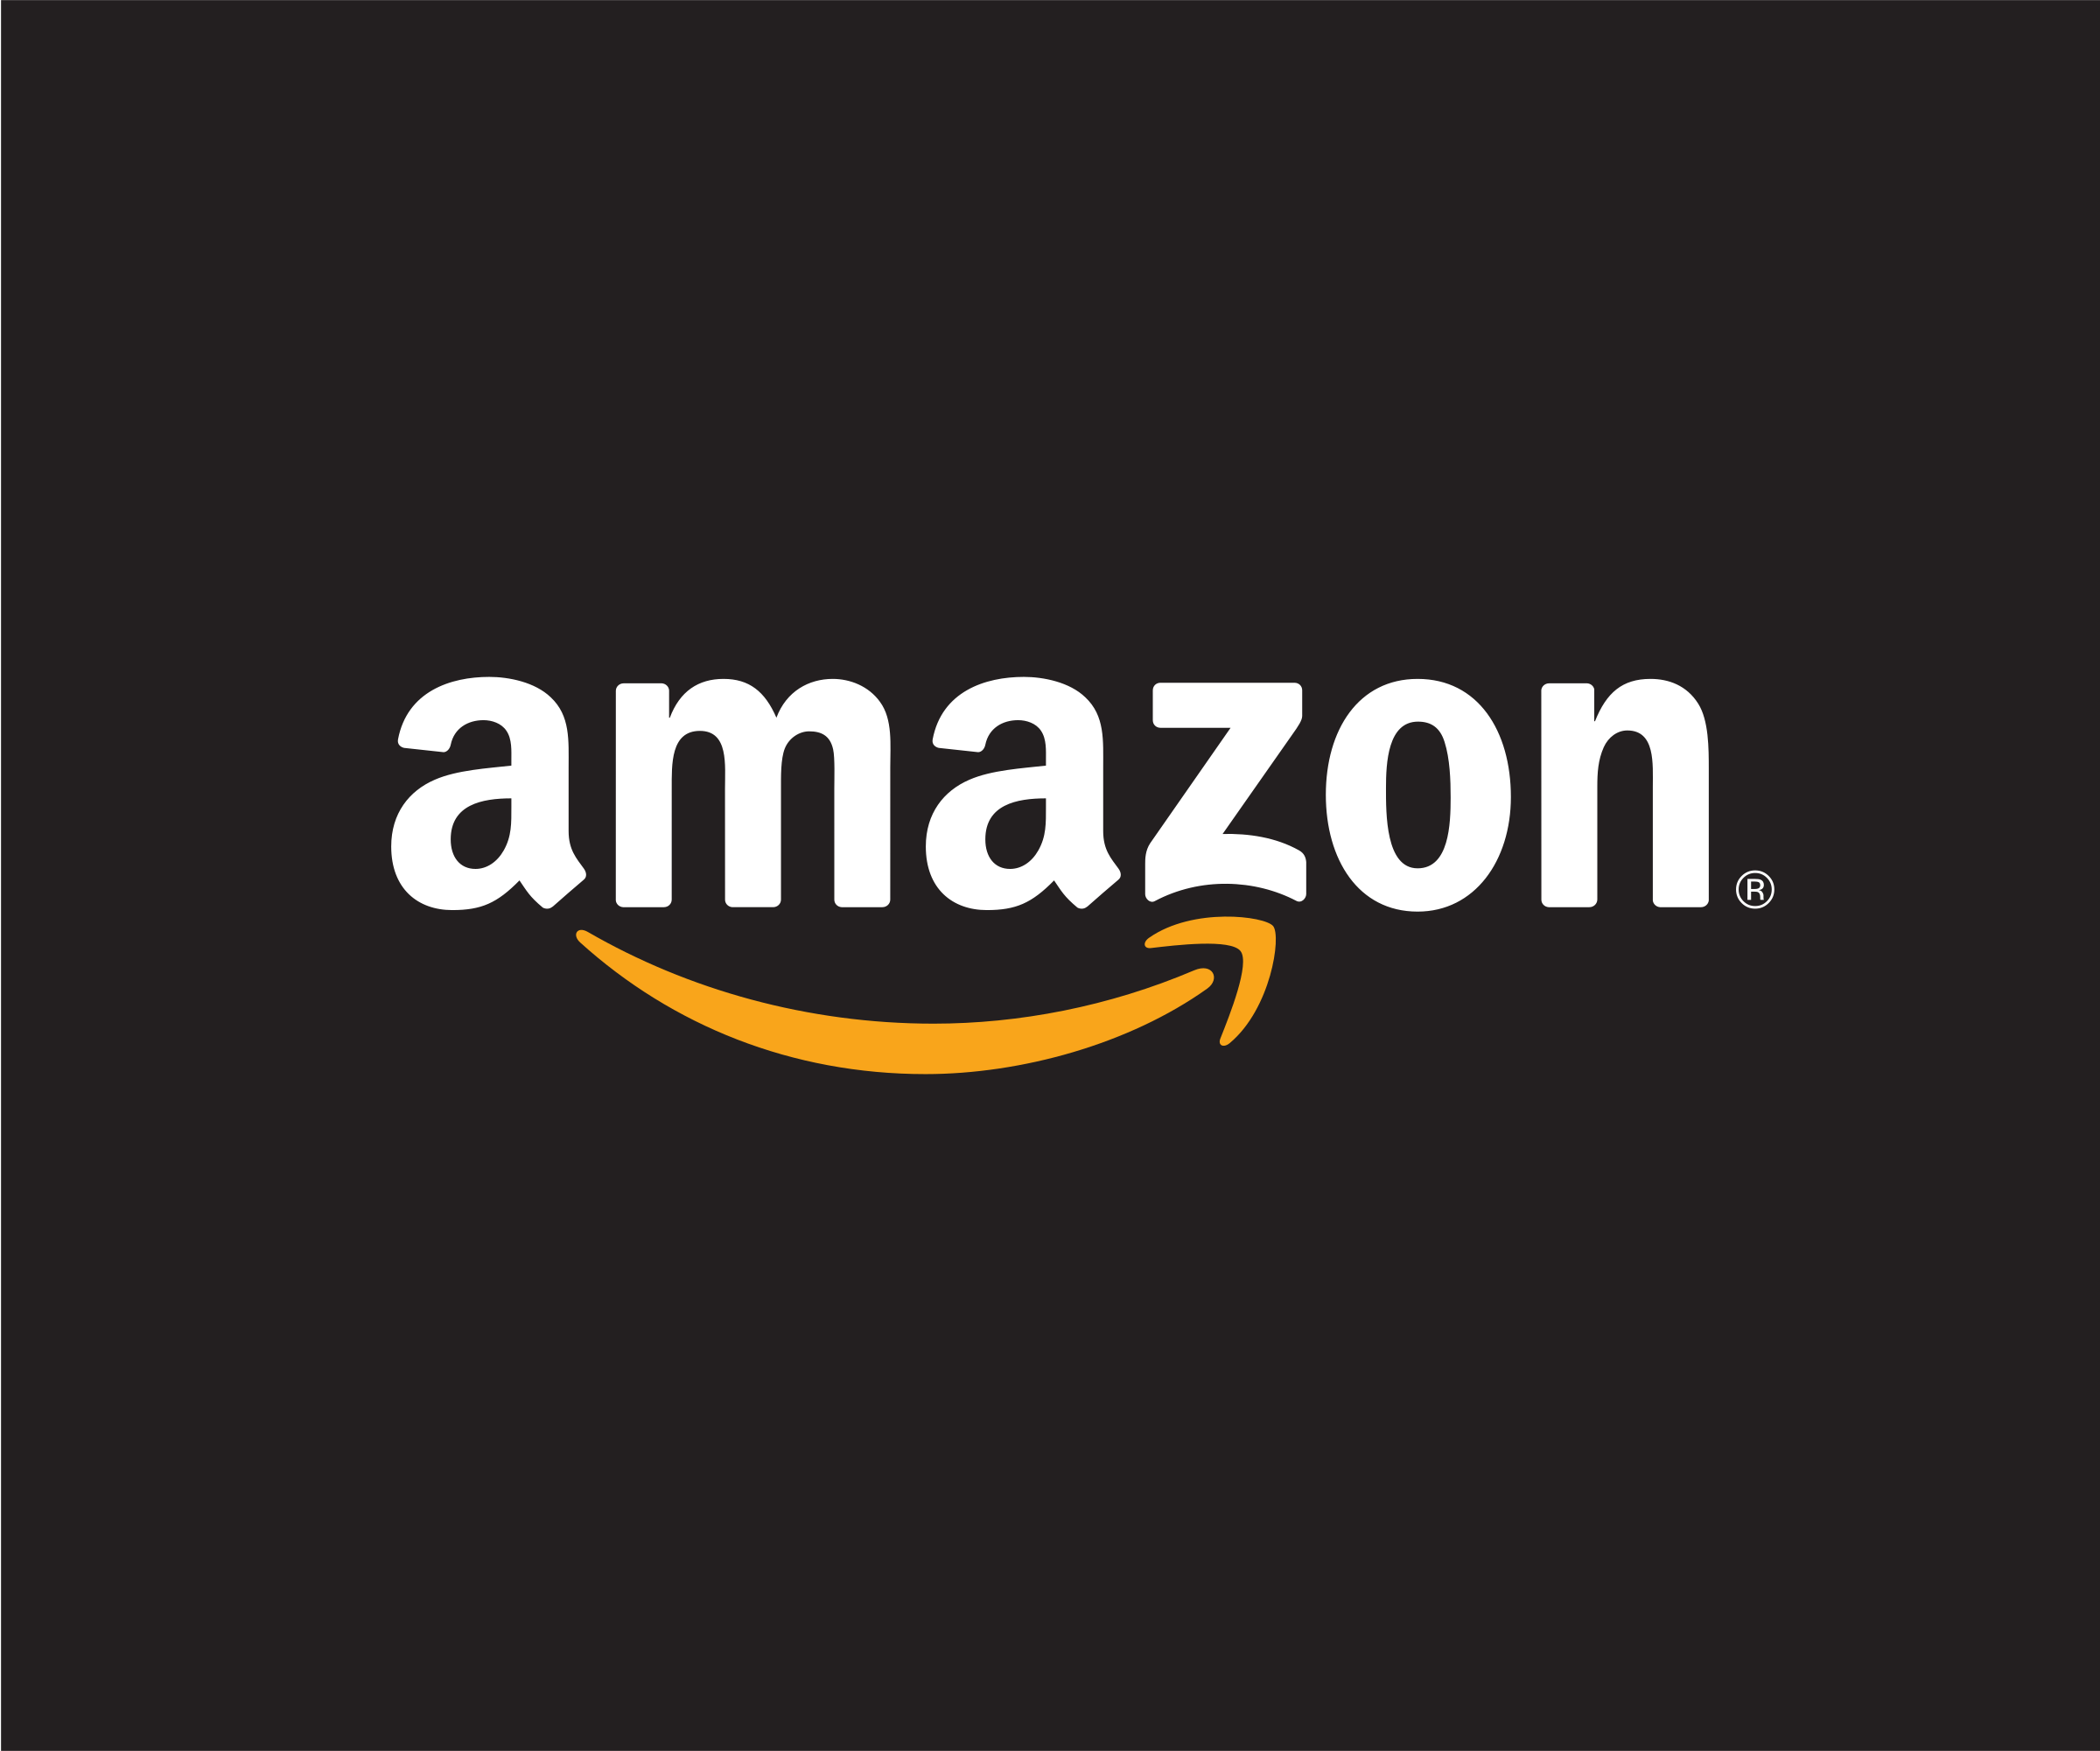 amazon-dark-logo-png-transparent